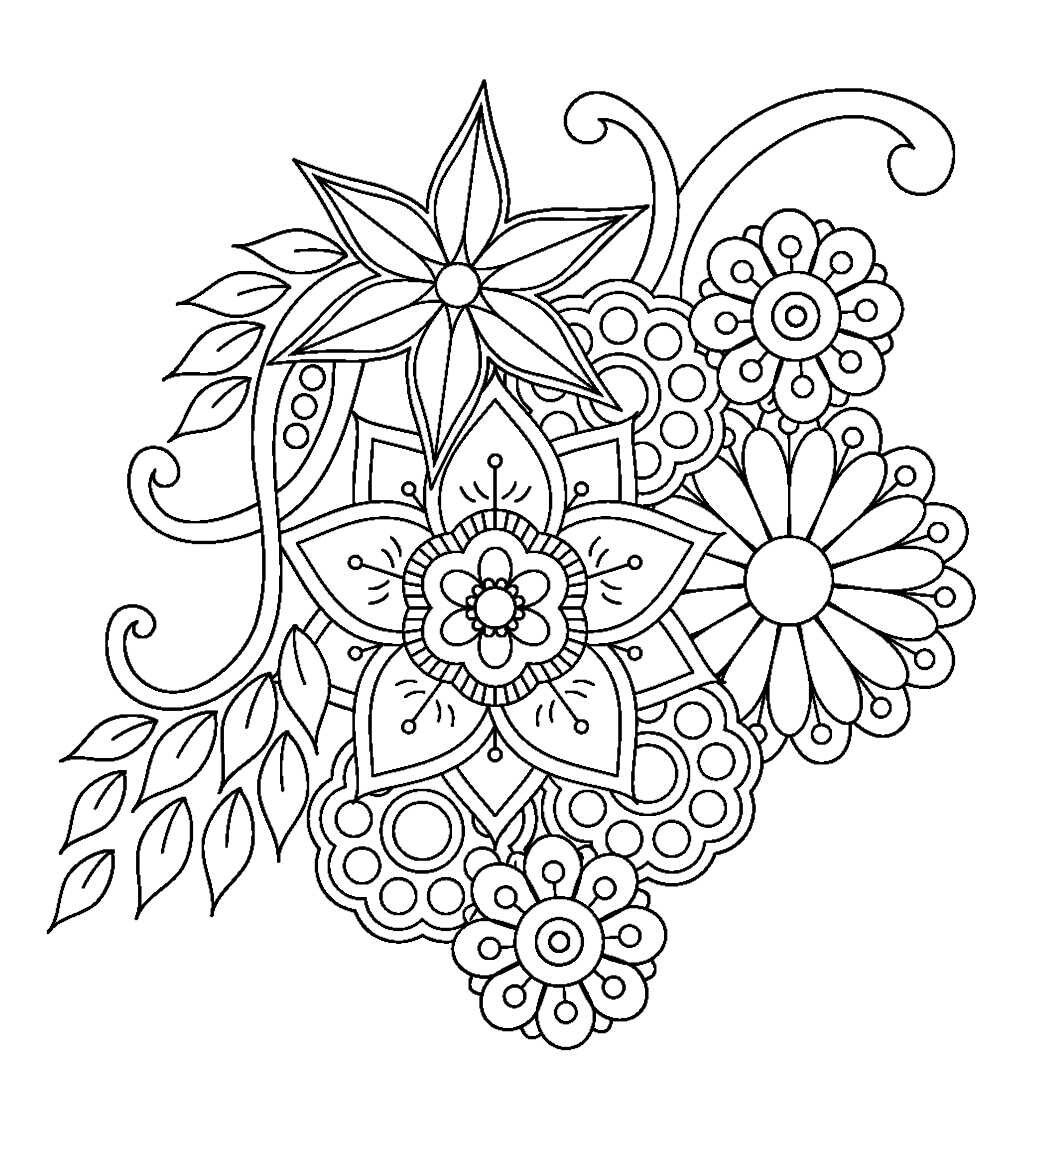 Pin by Christy Lopez on Adult Coloring Pinterest Adult coloring